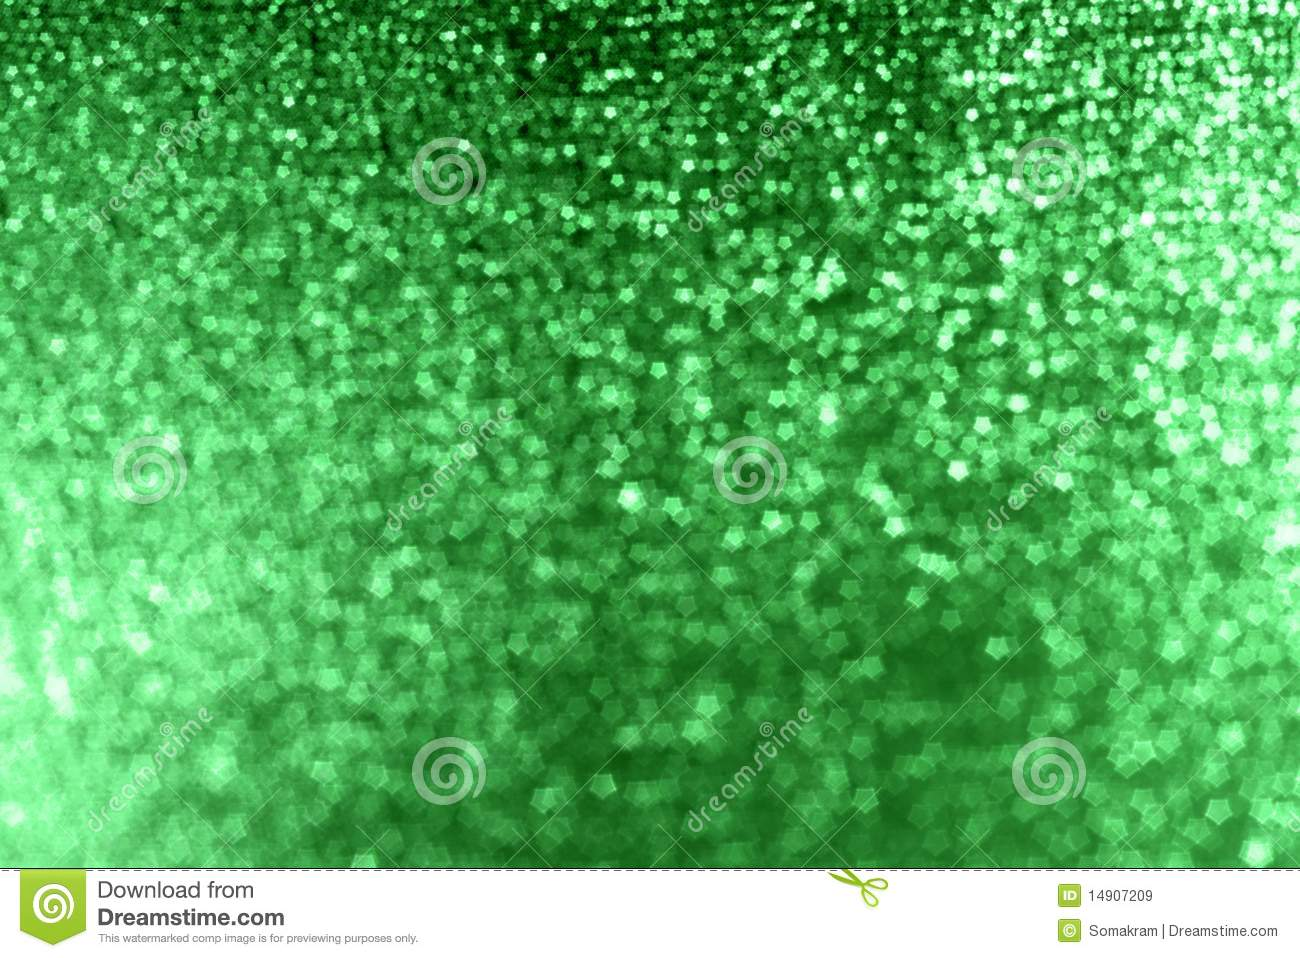 Vintage Black Wallpaper Green Sparkle Background Royalty Free Stock Images Image